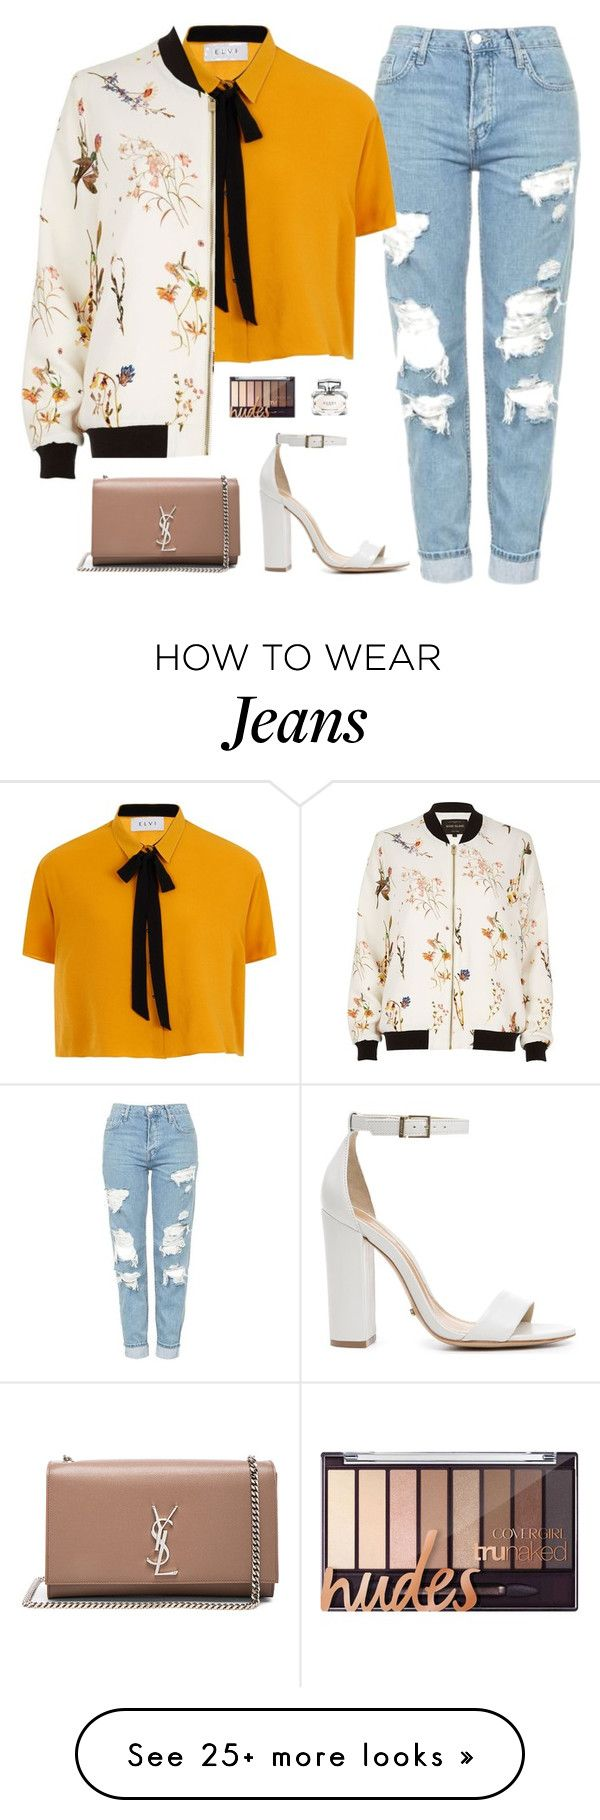 """""""Untitled #2240"""" by lauraafreedom on Polyvore featuring Topshop, Elvi, River Island, Schutz, Yves Saint Laurent and Gucci"""